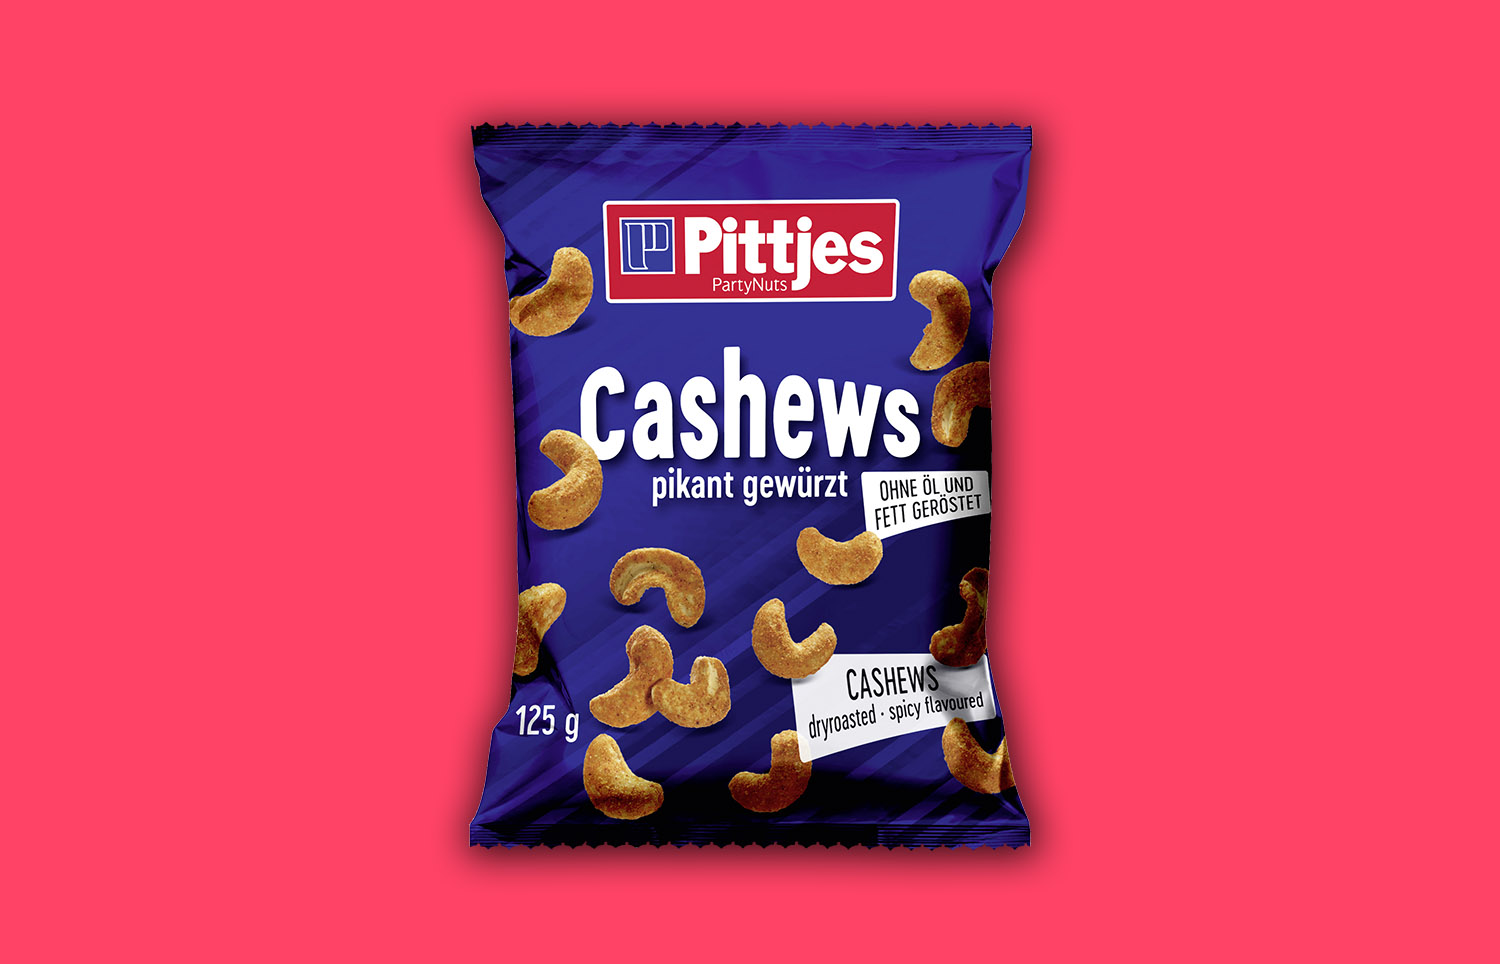 Pittjes Cashews